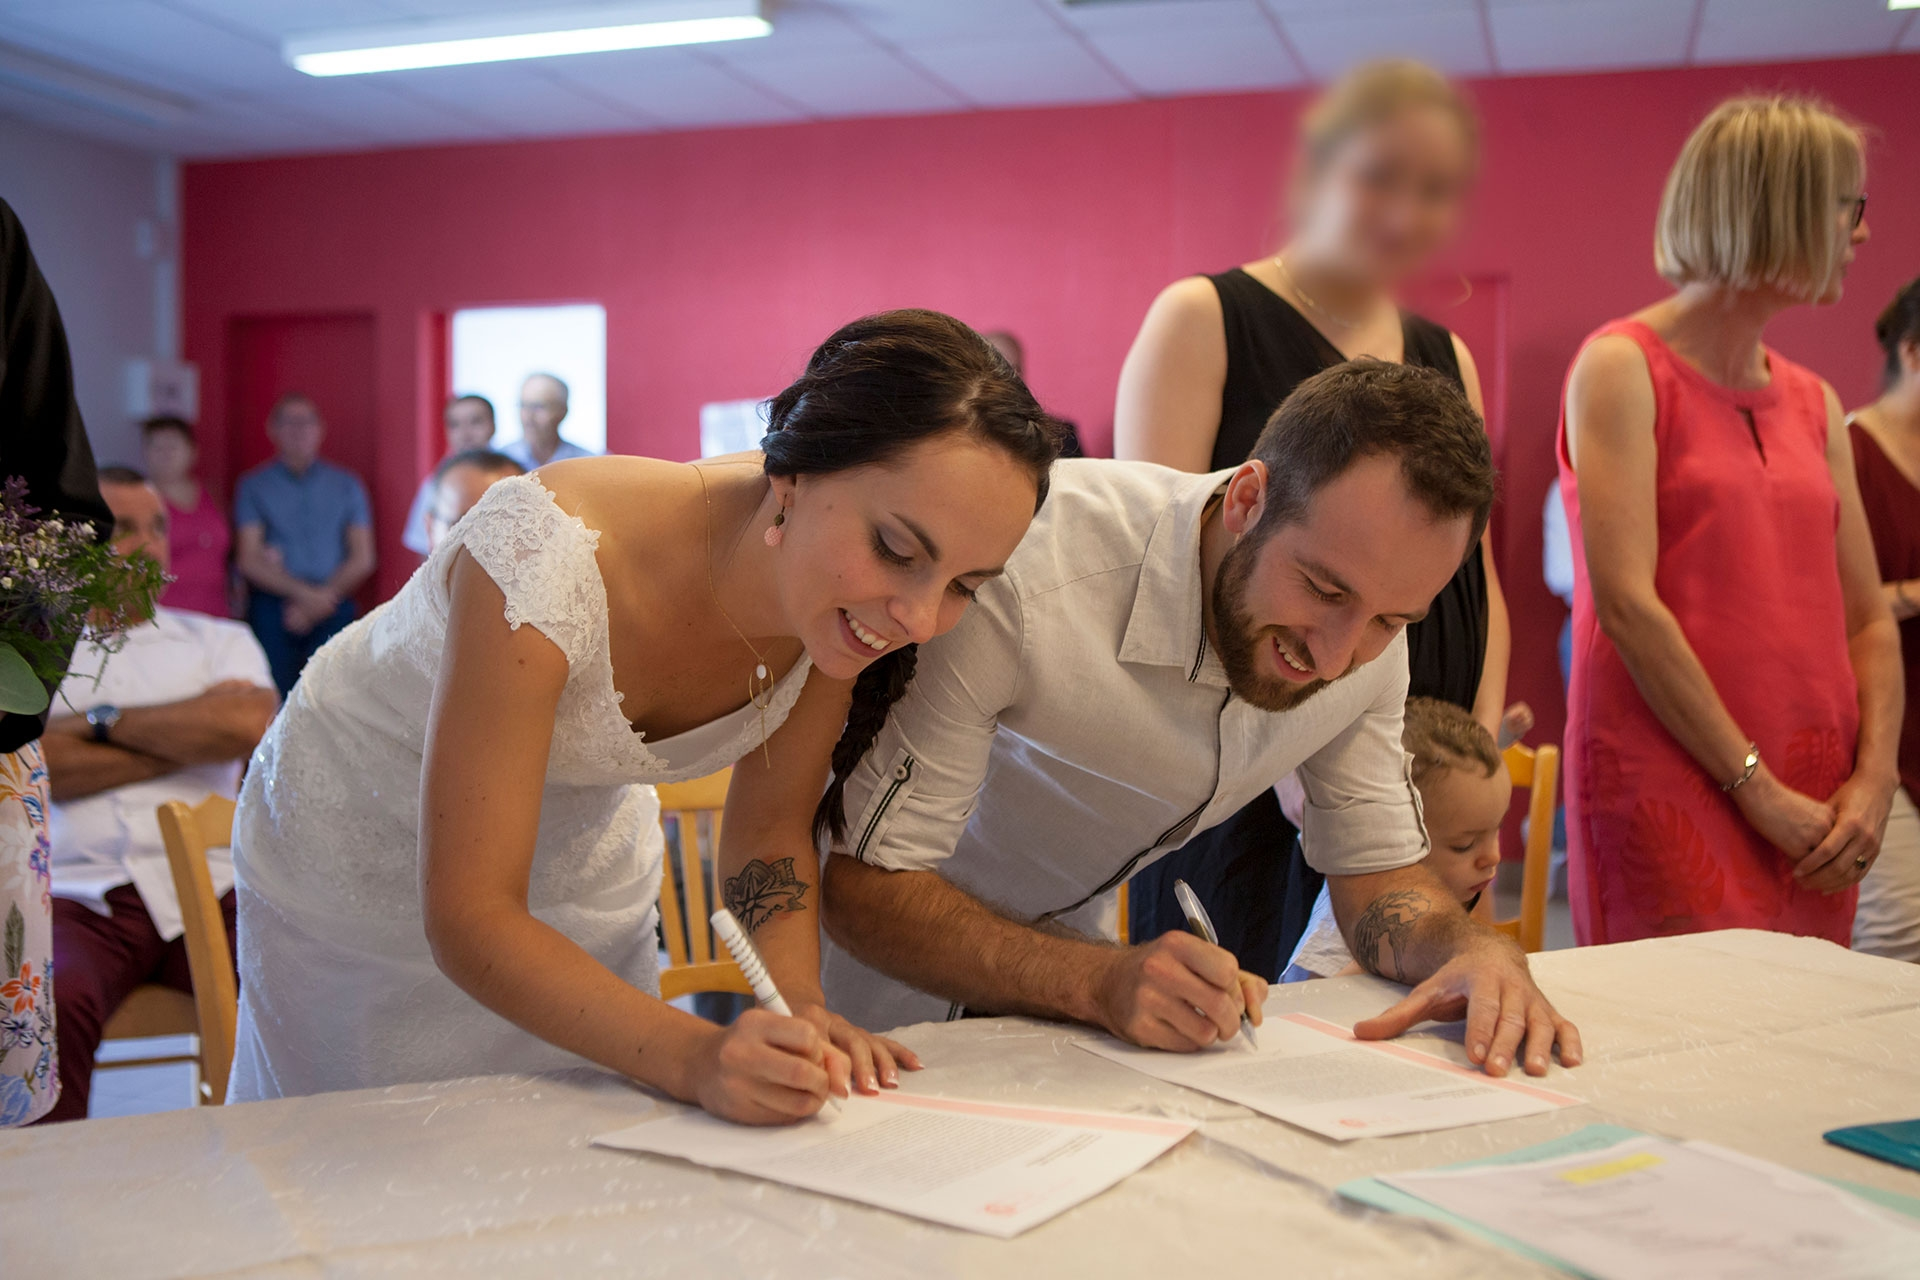 particuliers-evenements-mariage-oui-carla&jeremy-42